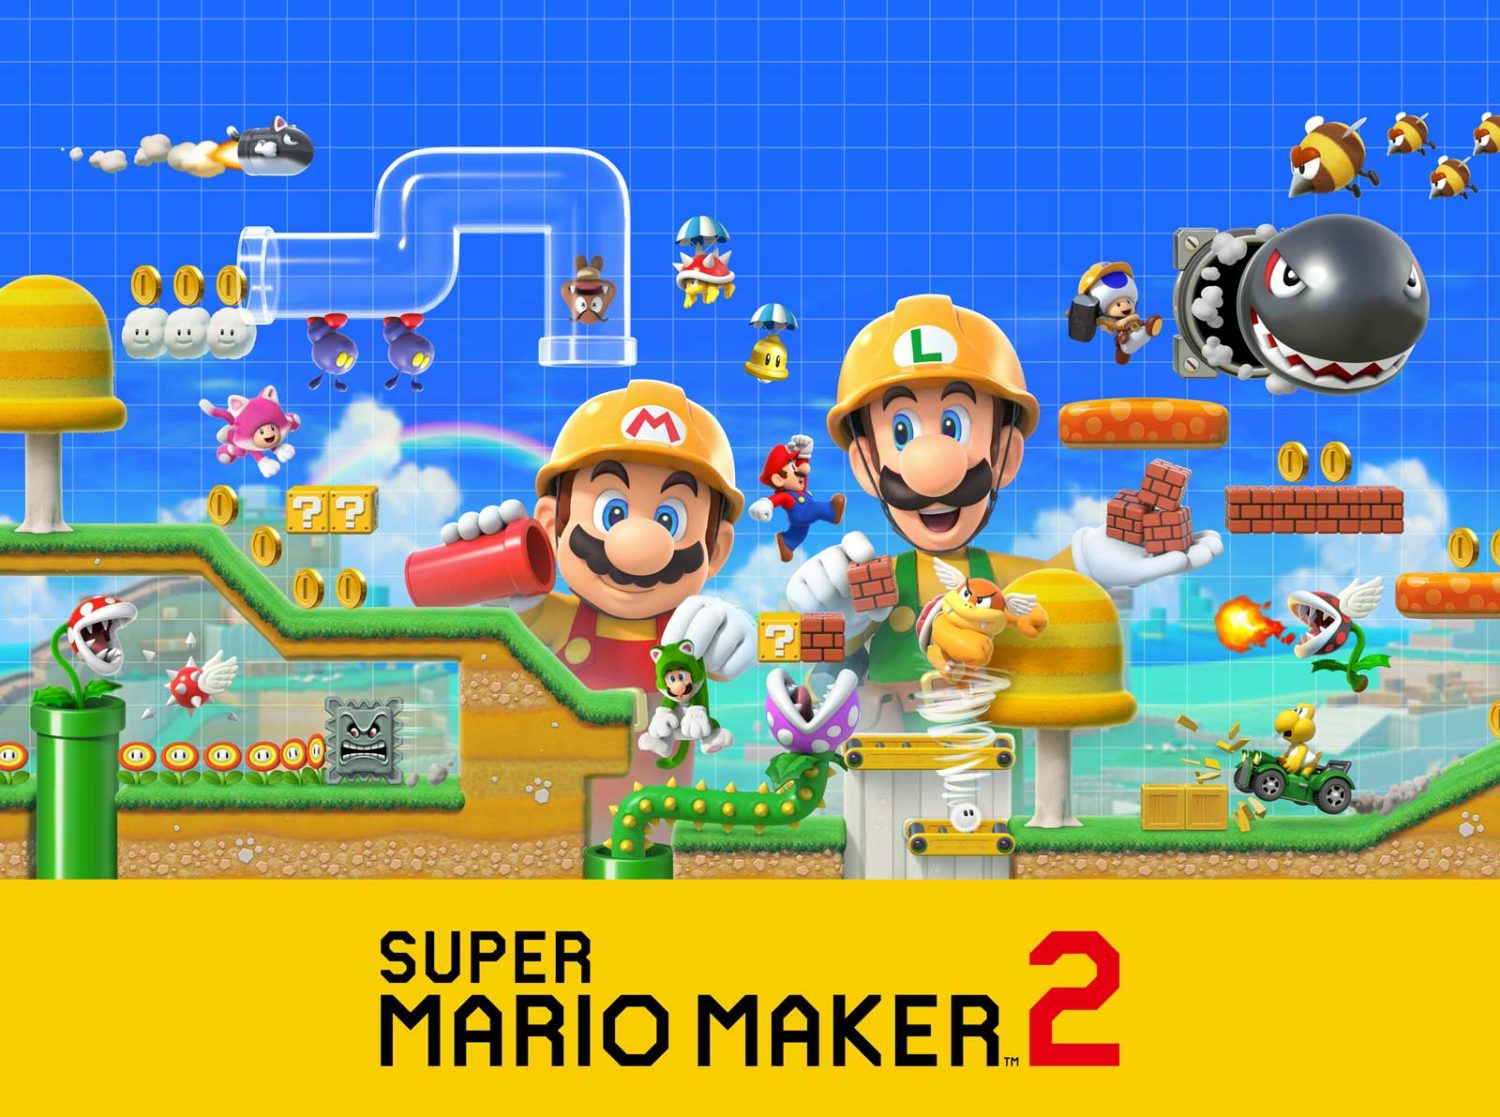 Super Mario Maker 2 - Illustration